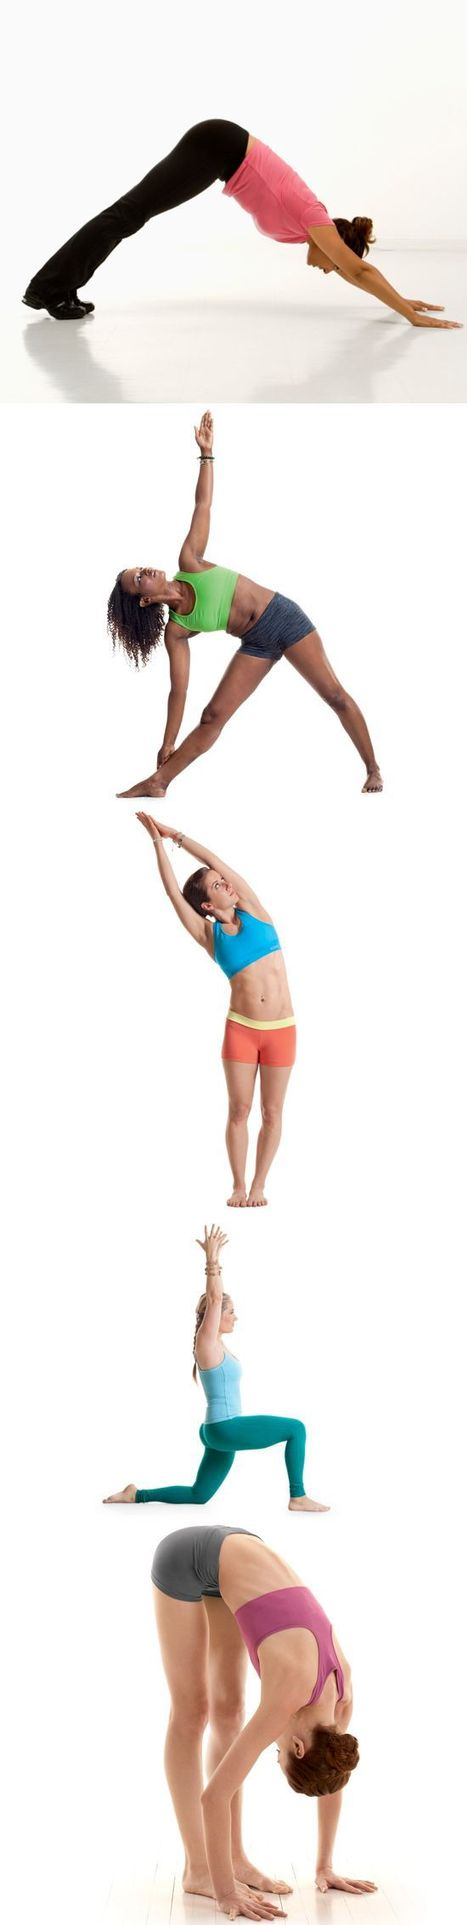 5 Easy Yoga Poses Everyone Should Do Every Day | Soins, Bio, Slow Cosmétique... | Scoop.it